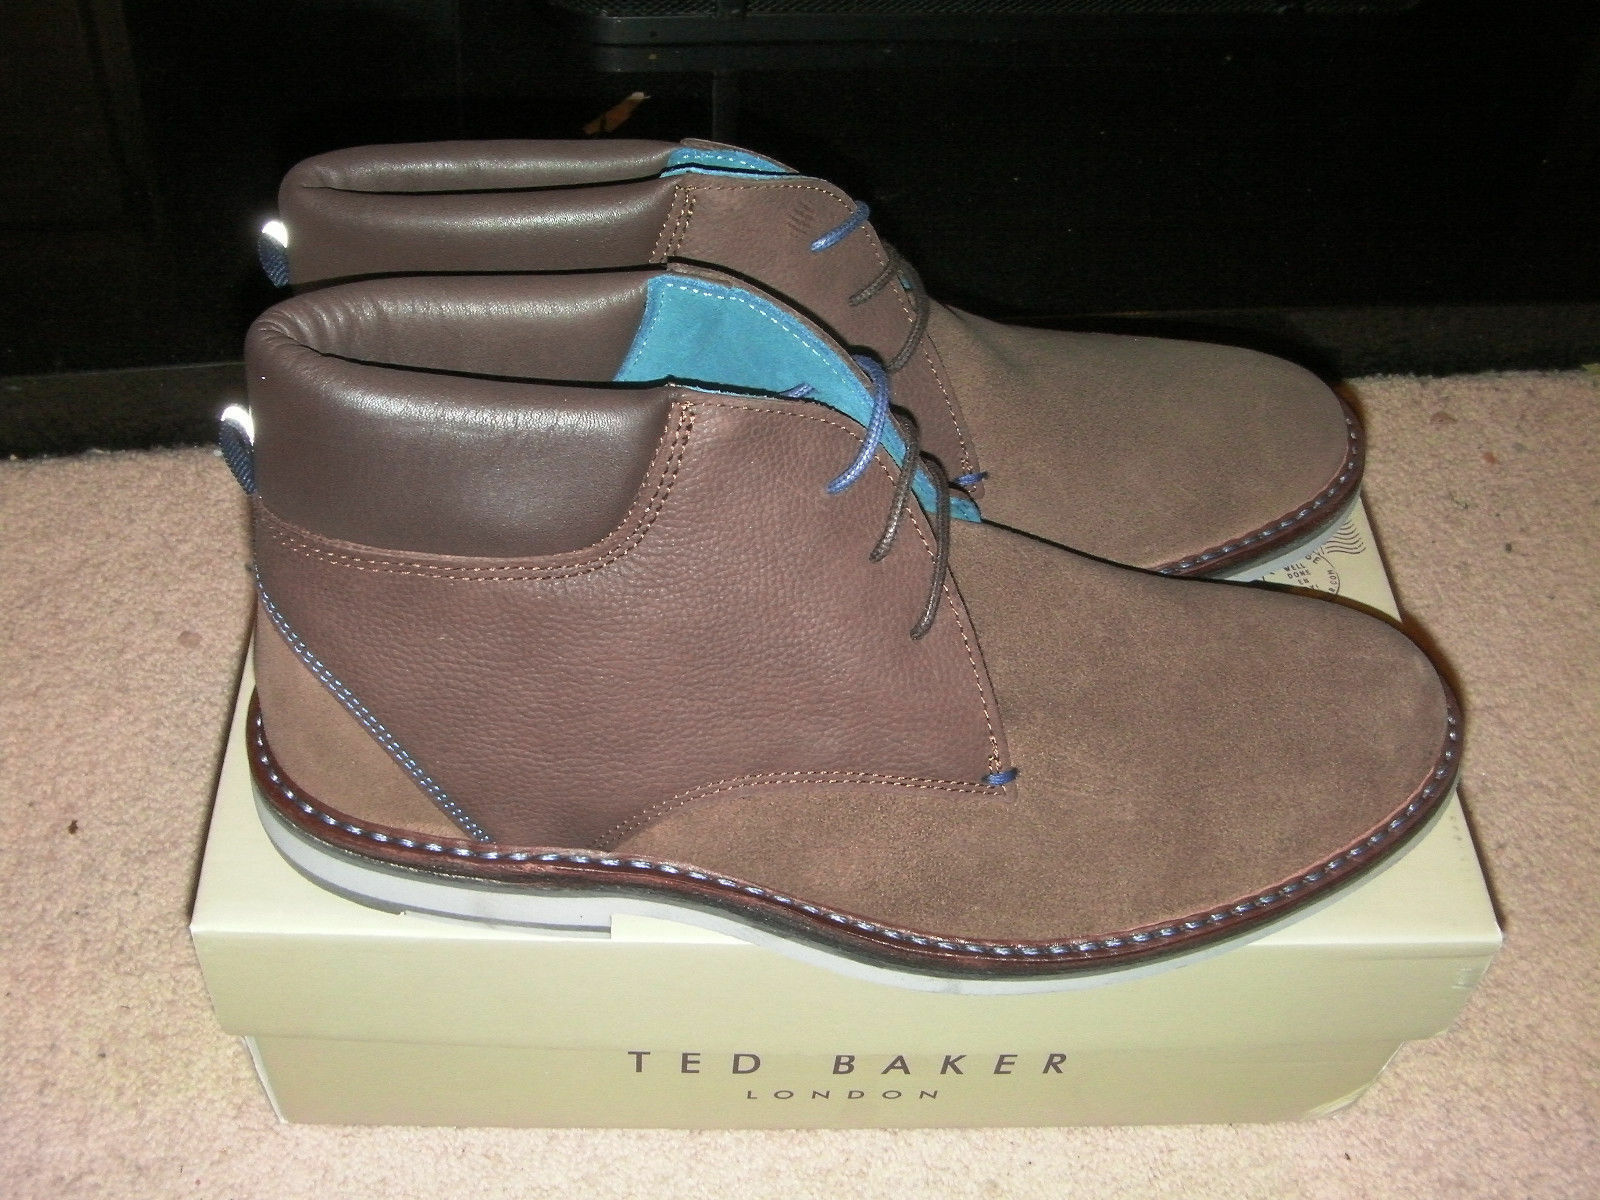 29545d5f34 Ted Baker Men's Arkson Ankle Boots Brown 9 UK EU - NEW 43 (Brown)  nxsrsj2796-Men's Boots